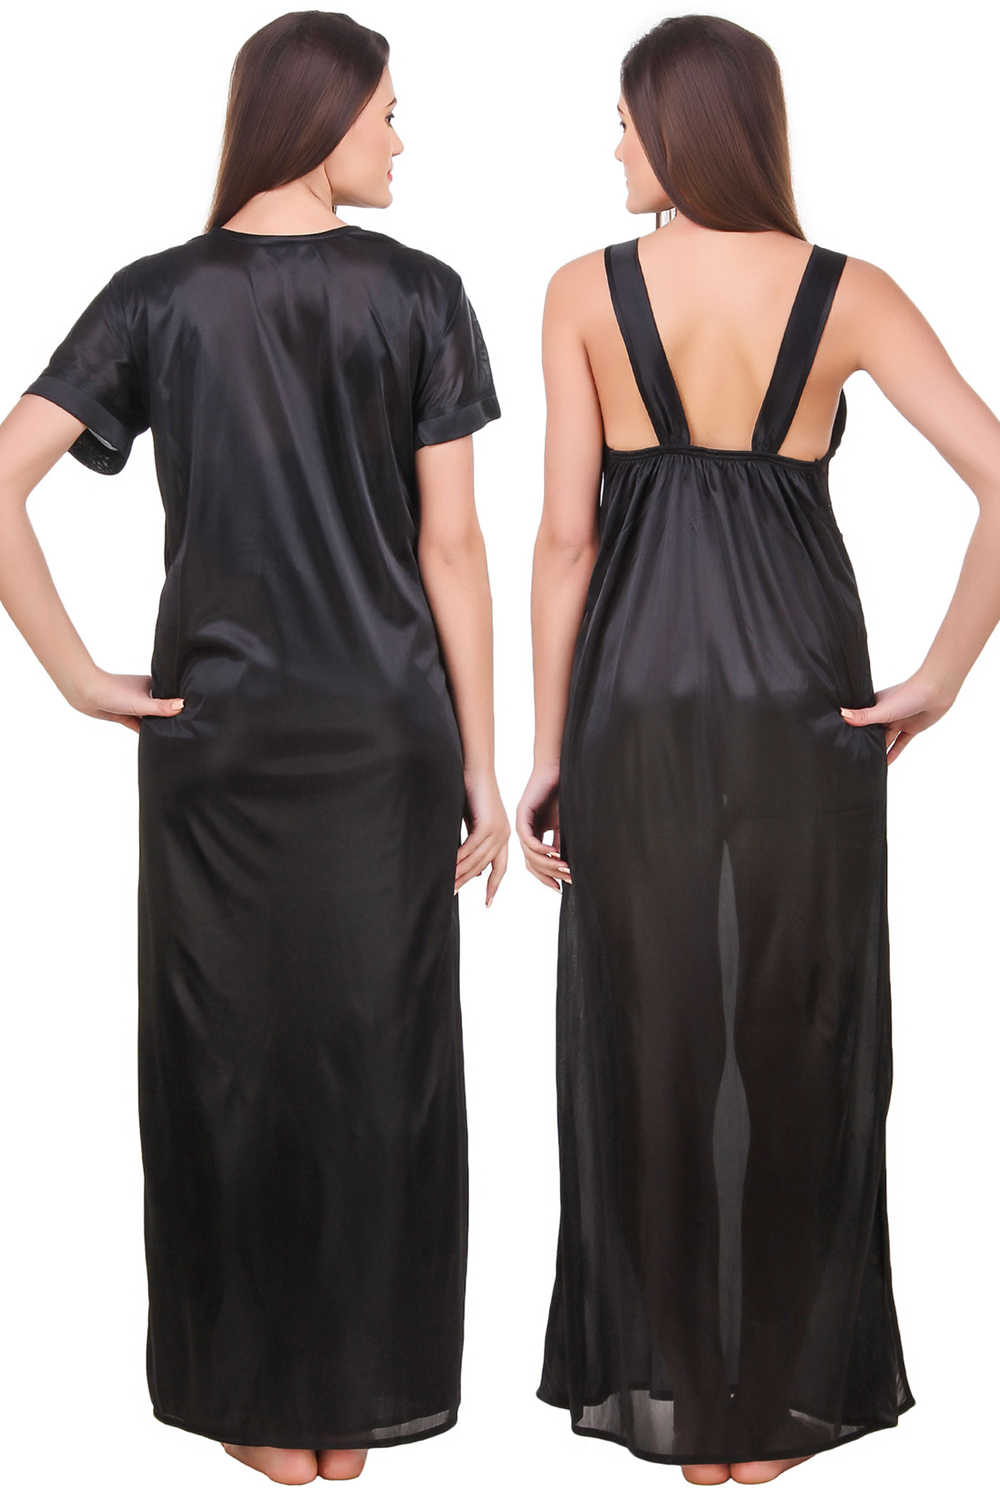 a1e00eeb0a5ba Fasense Satin Black Nightwear 2 Pc Set of Nighty and Wrap Gown - Buy  Fasense Satin Black Nightwear 2 Pc Set of Nighty and Wrap Gown Online @  Best Price in ...